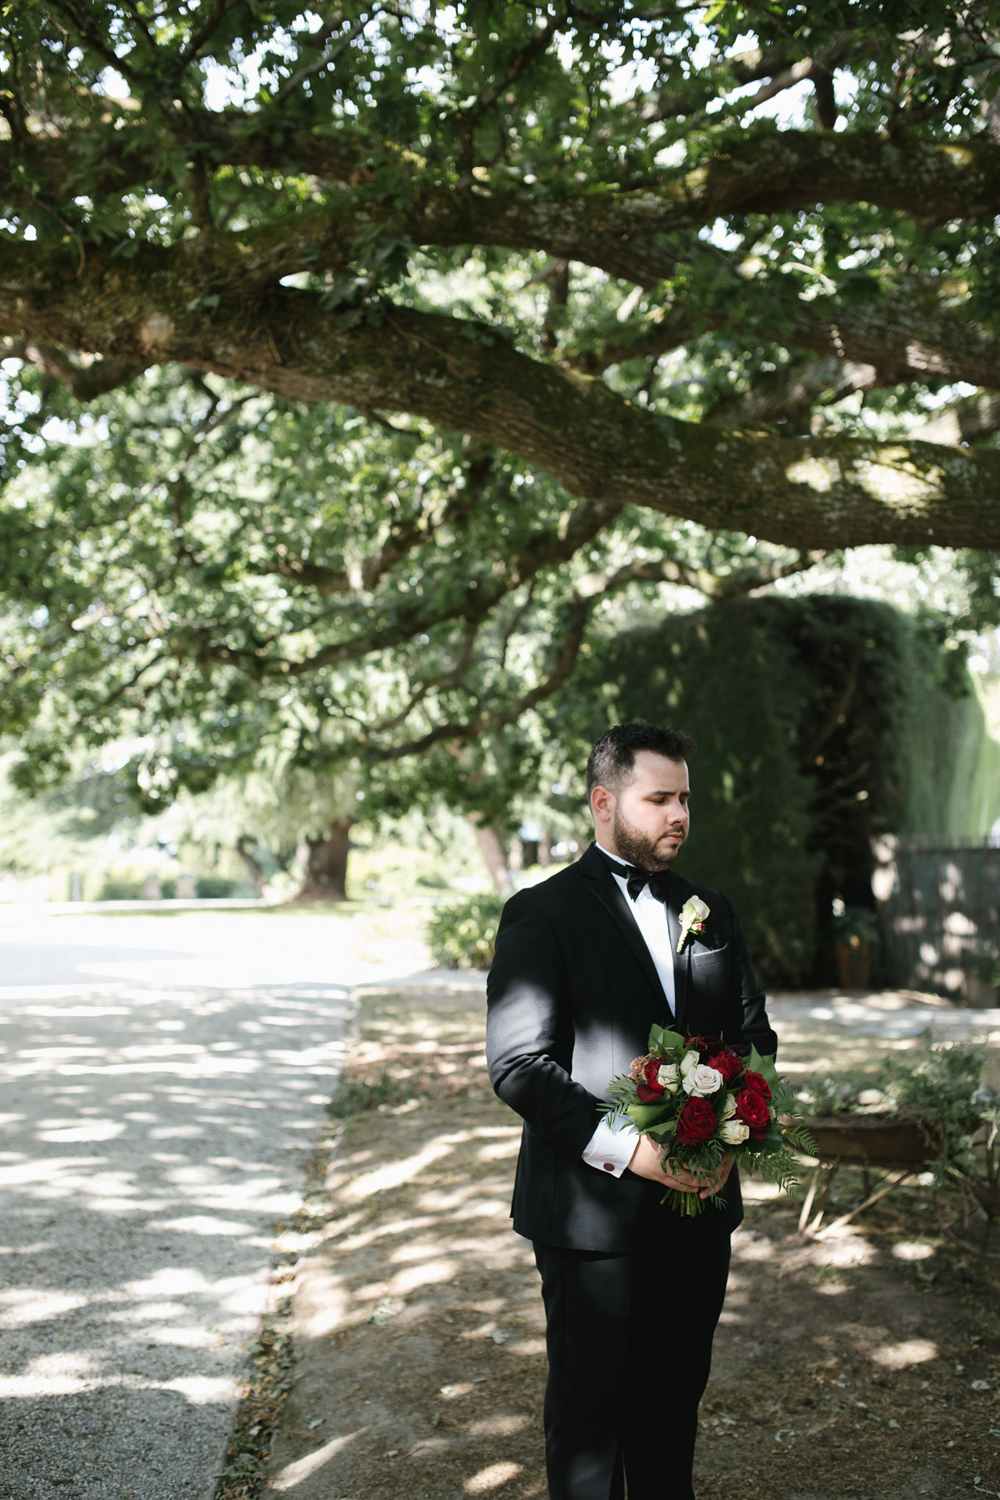 660-Byron-Bay-Wedding-Photographer-Carly-Tia-Photography.jpg